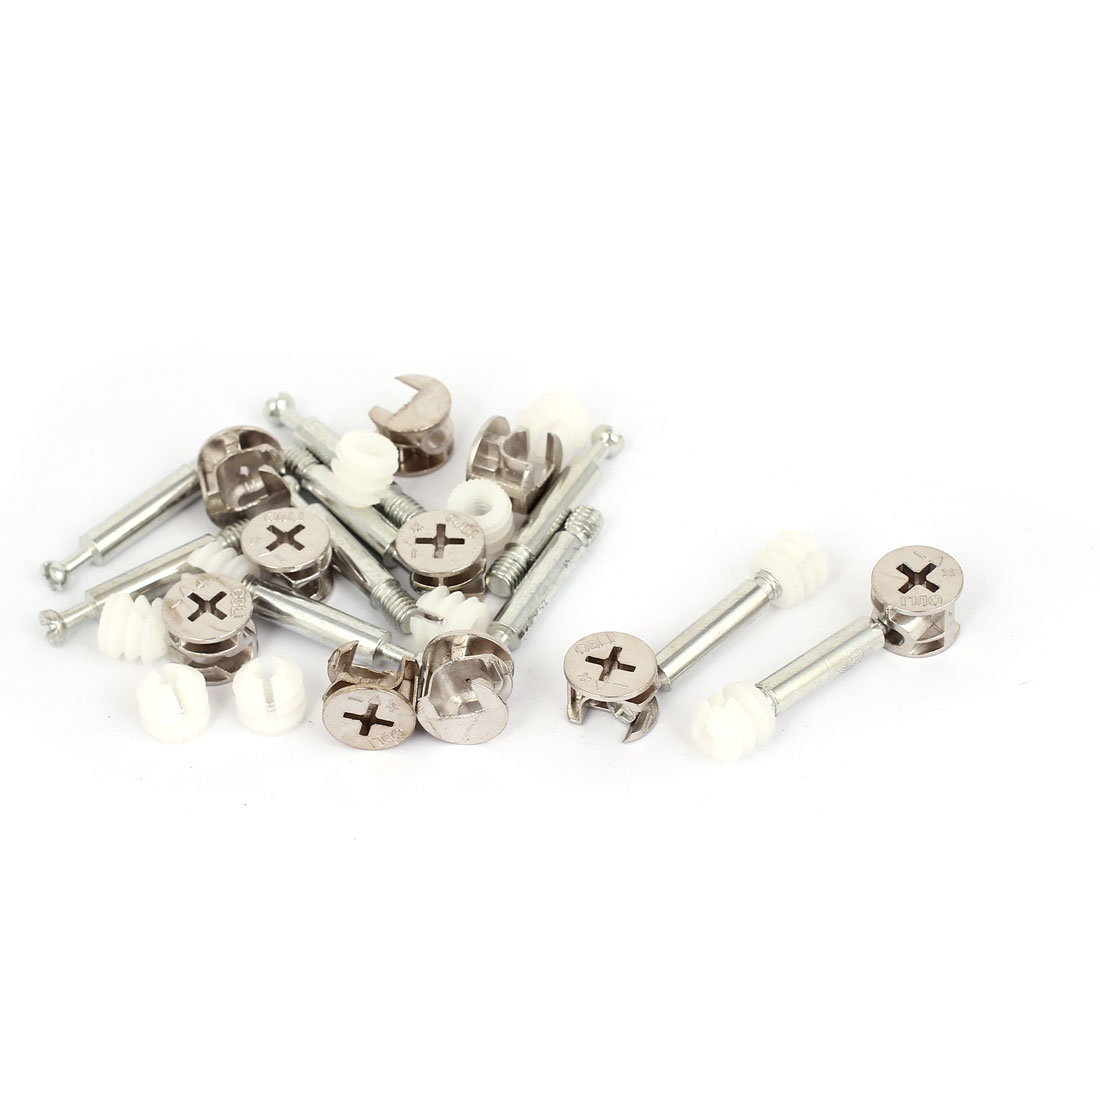 10 Sets Furniture Connectors Cam Fittings w Dowels w Pre-inserted Nuts